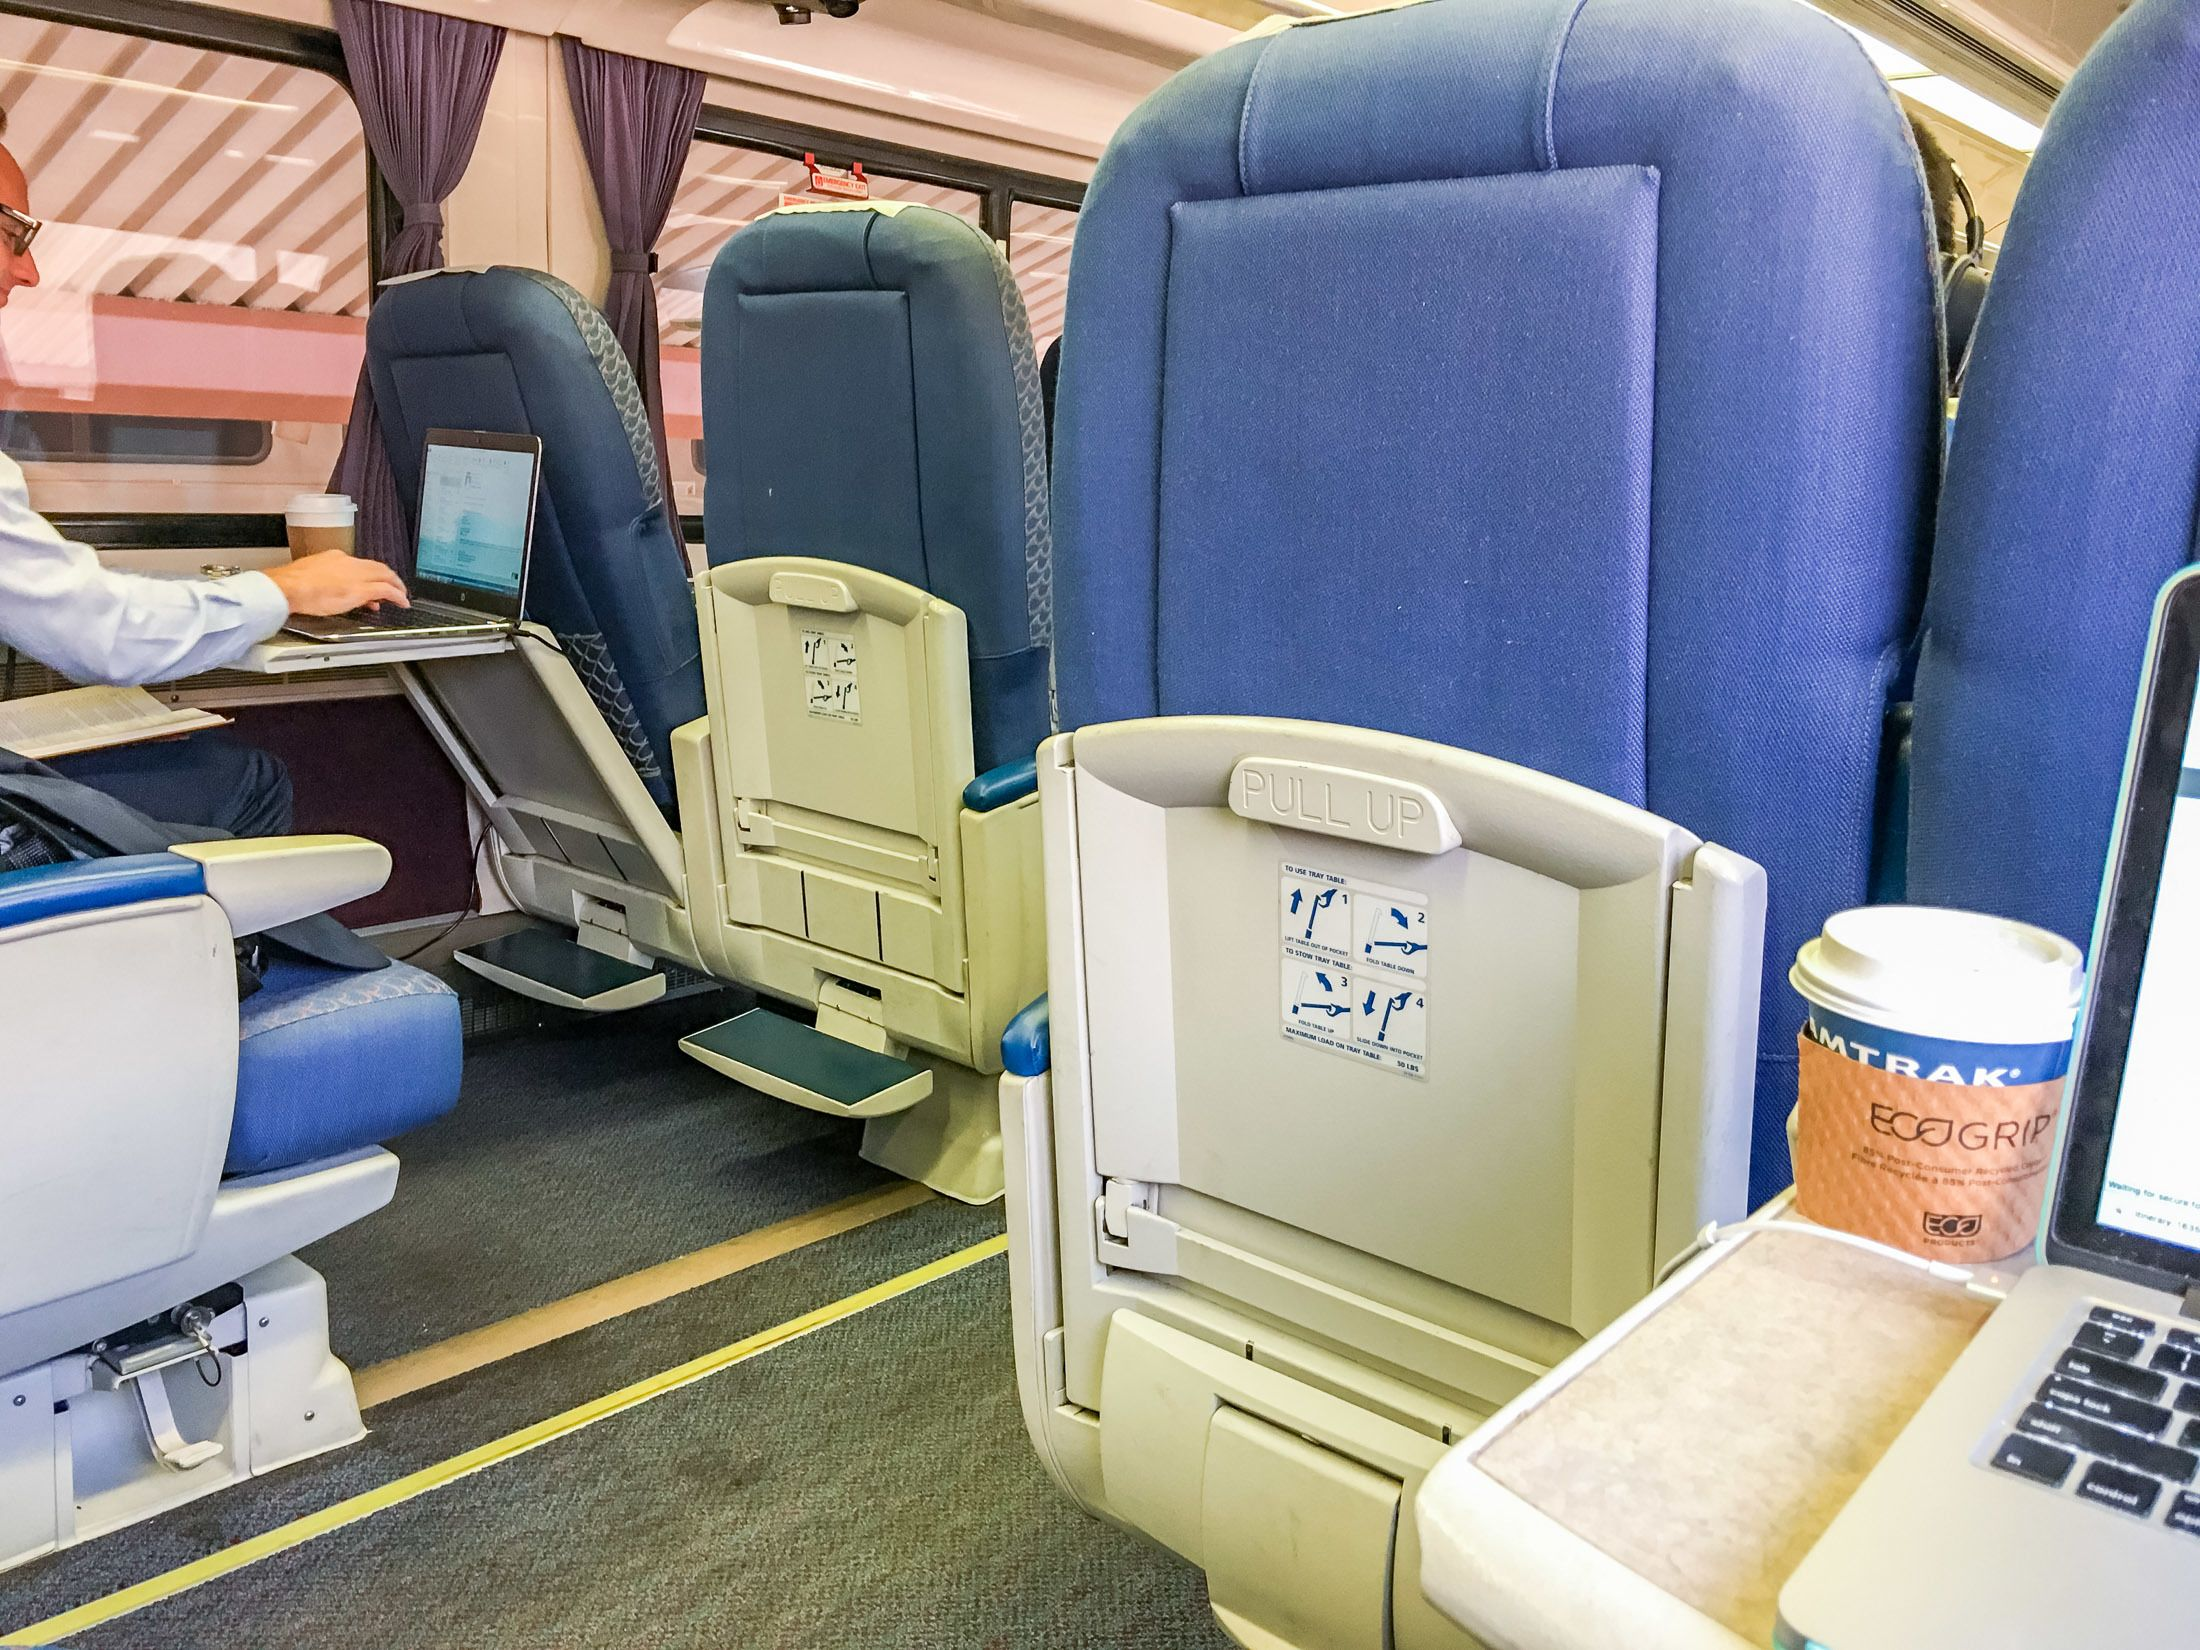 Seats in Amtrak business class on the Pacific Surfliner from San Diego to Santa Barbara.